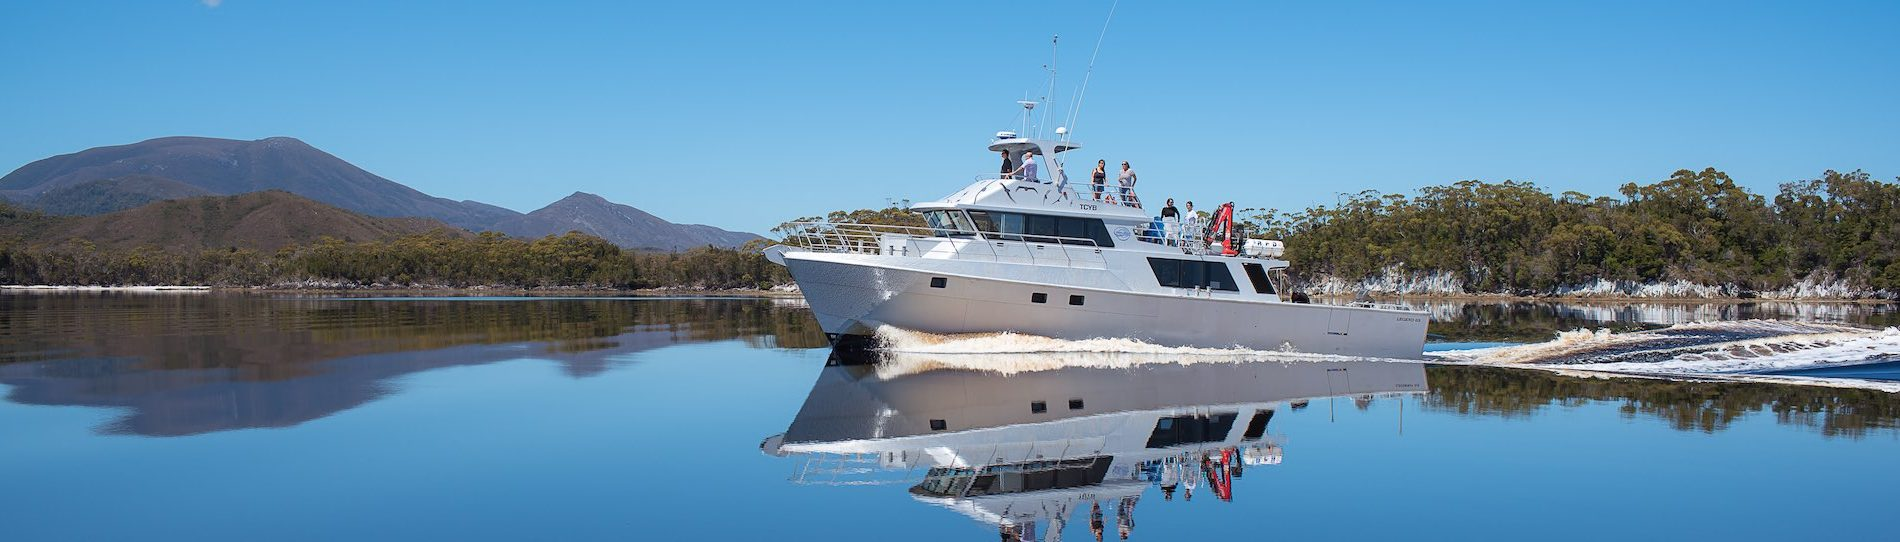 private hobart boat charter on the water